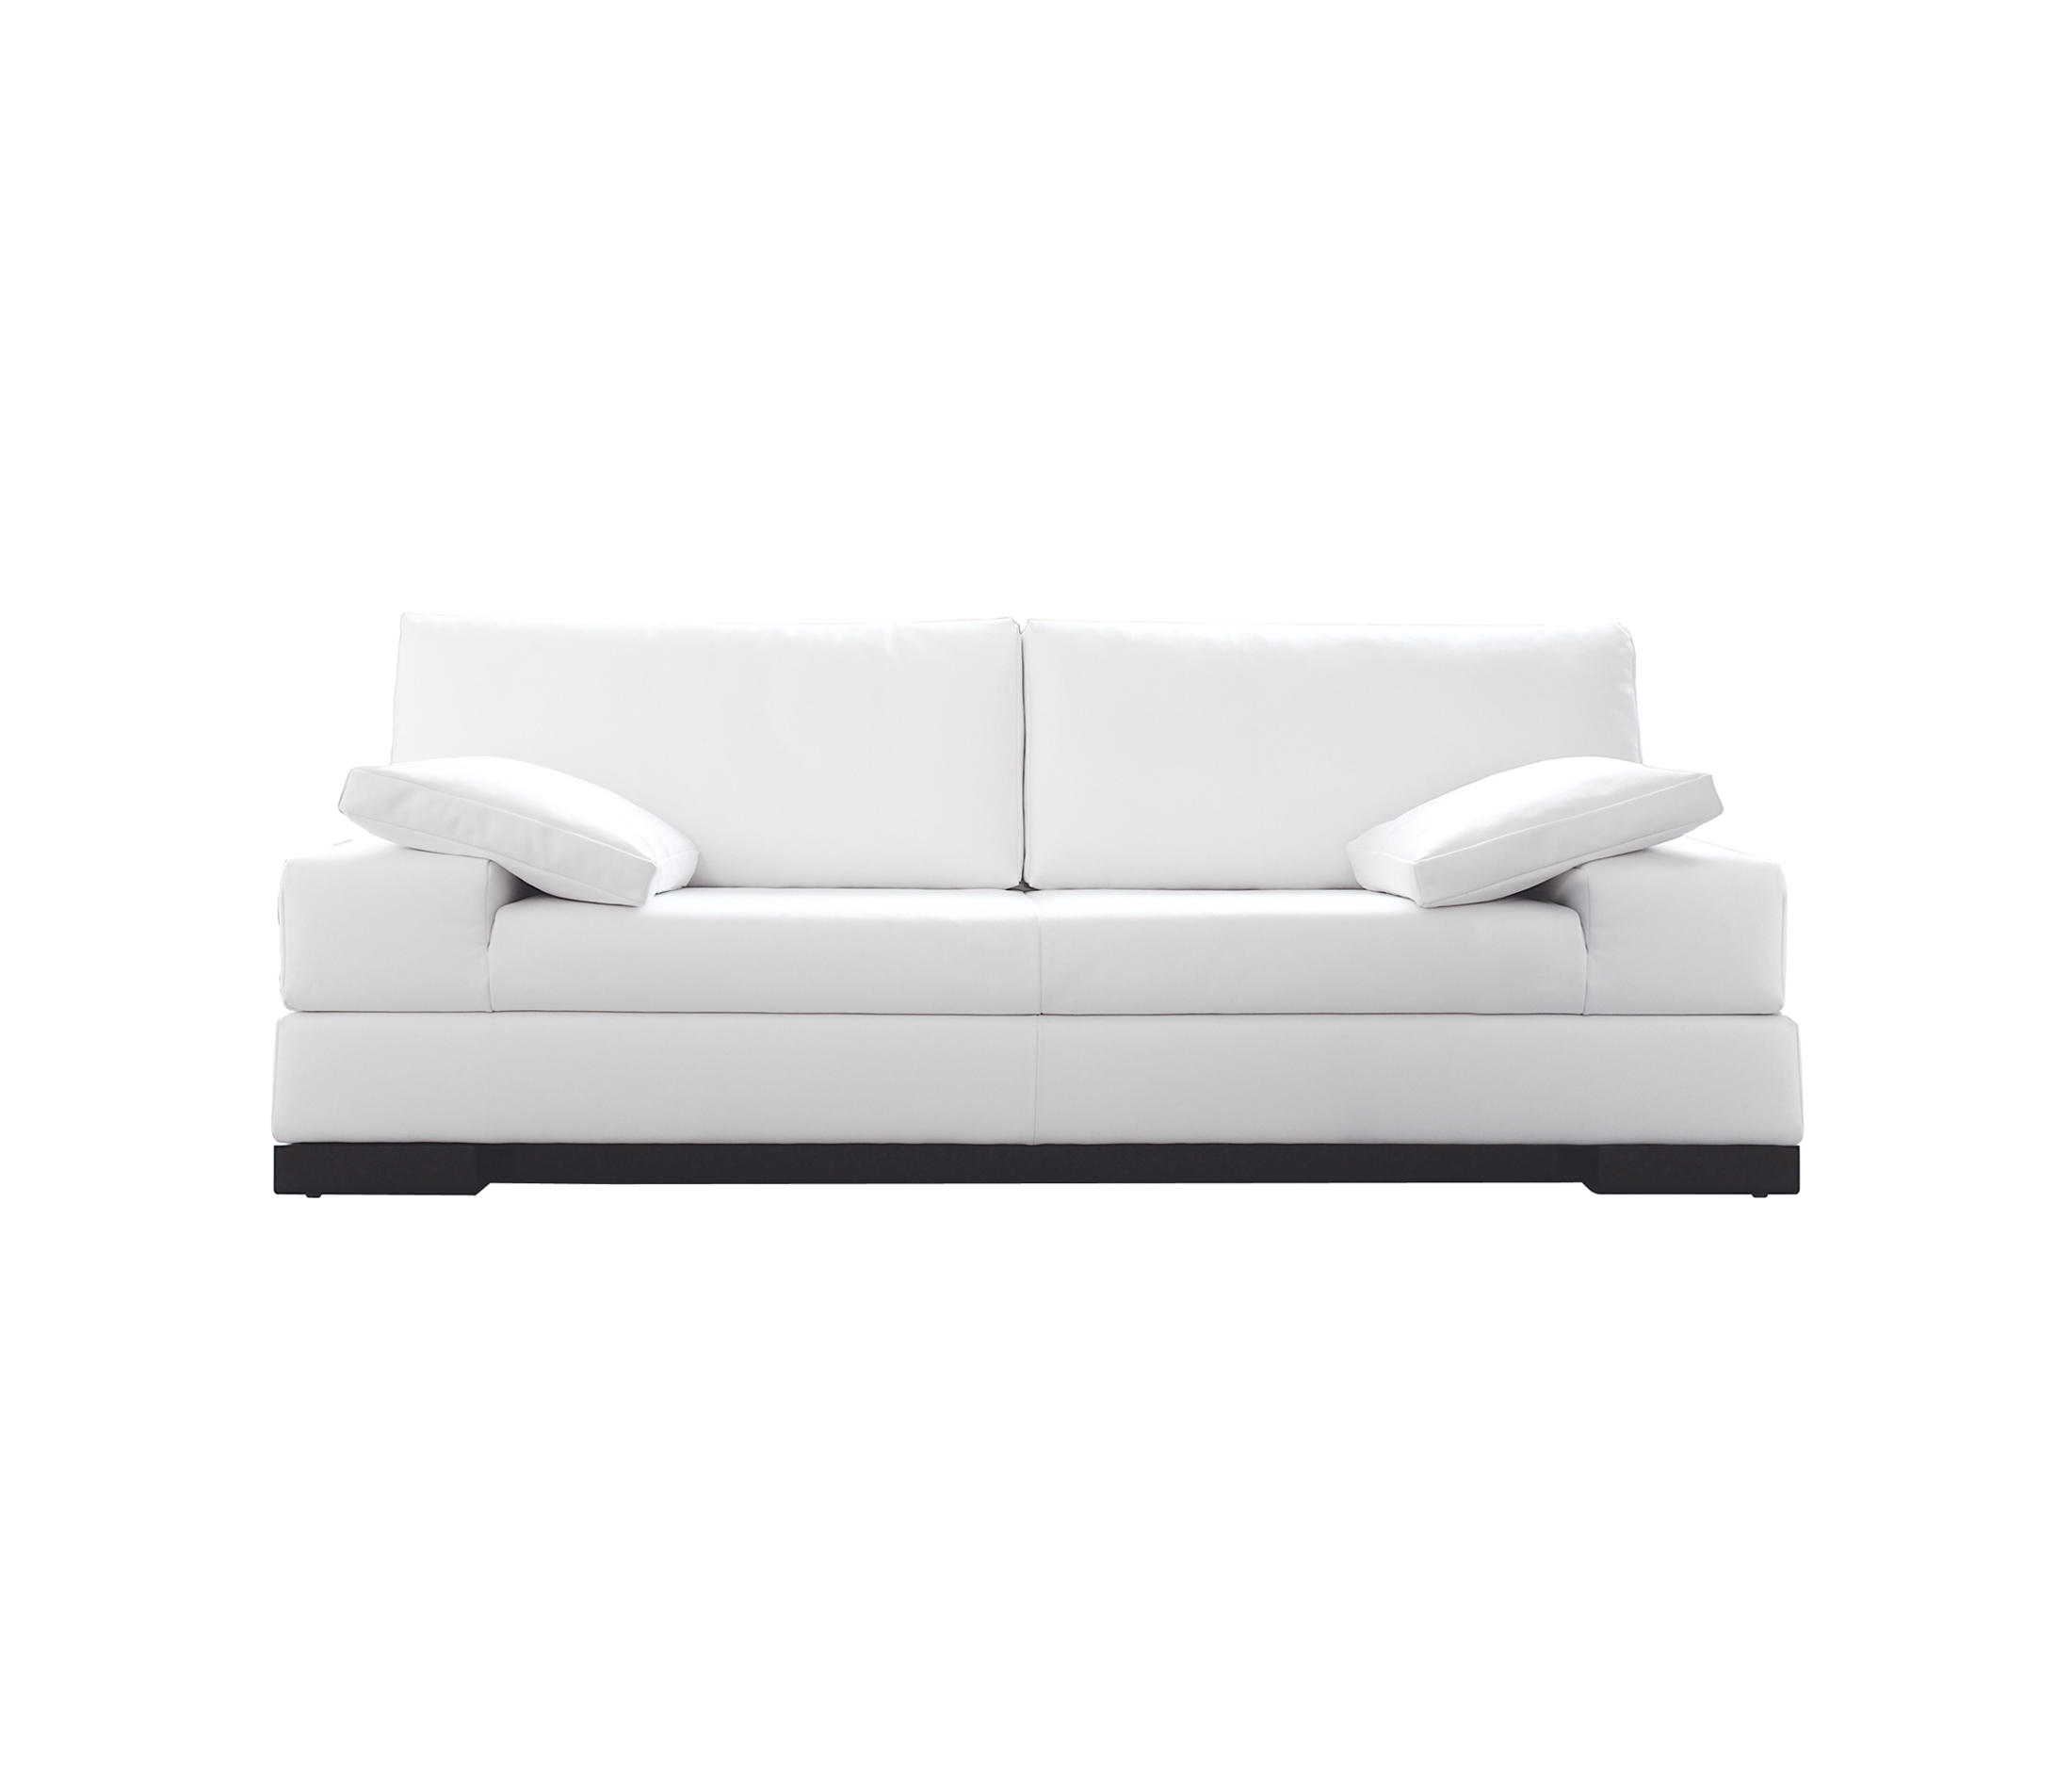 rp sofa dimensions gray under 300 bed sizes the bruce dream convertible is a pull out